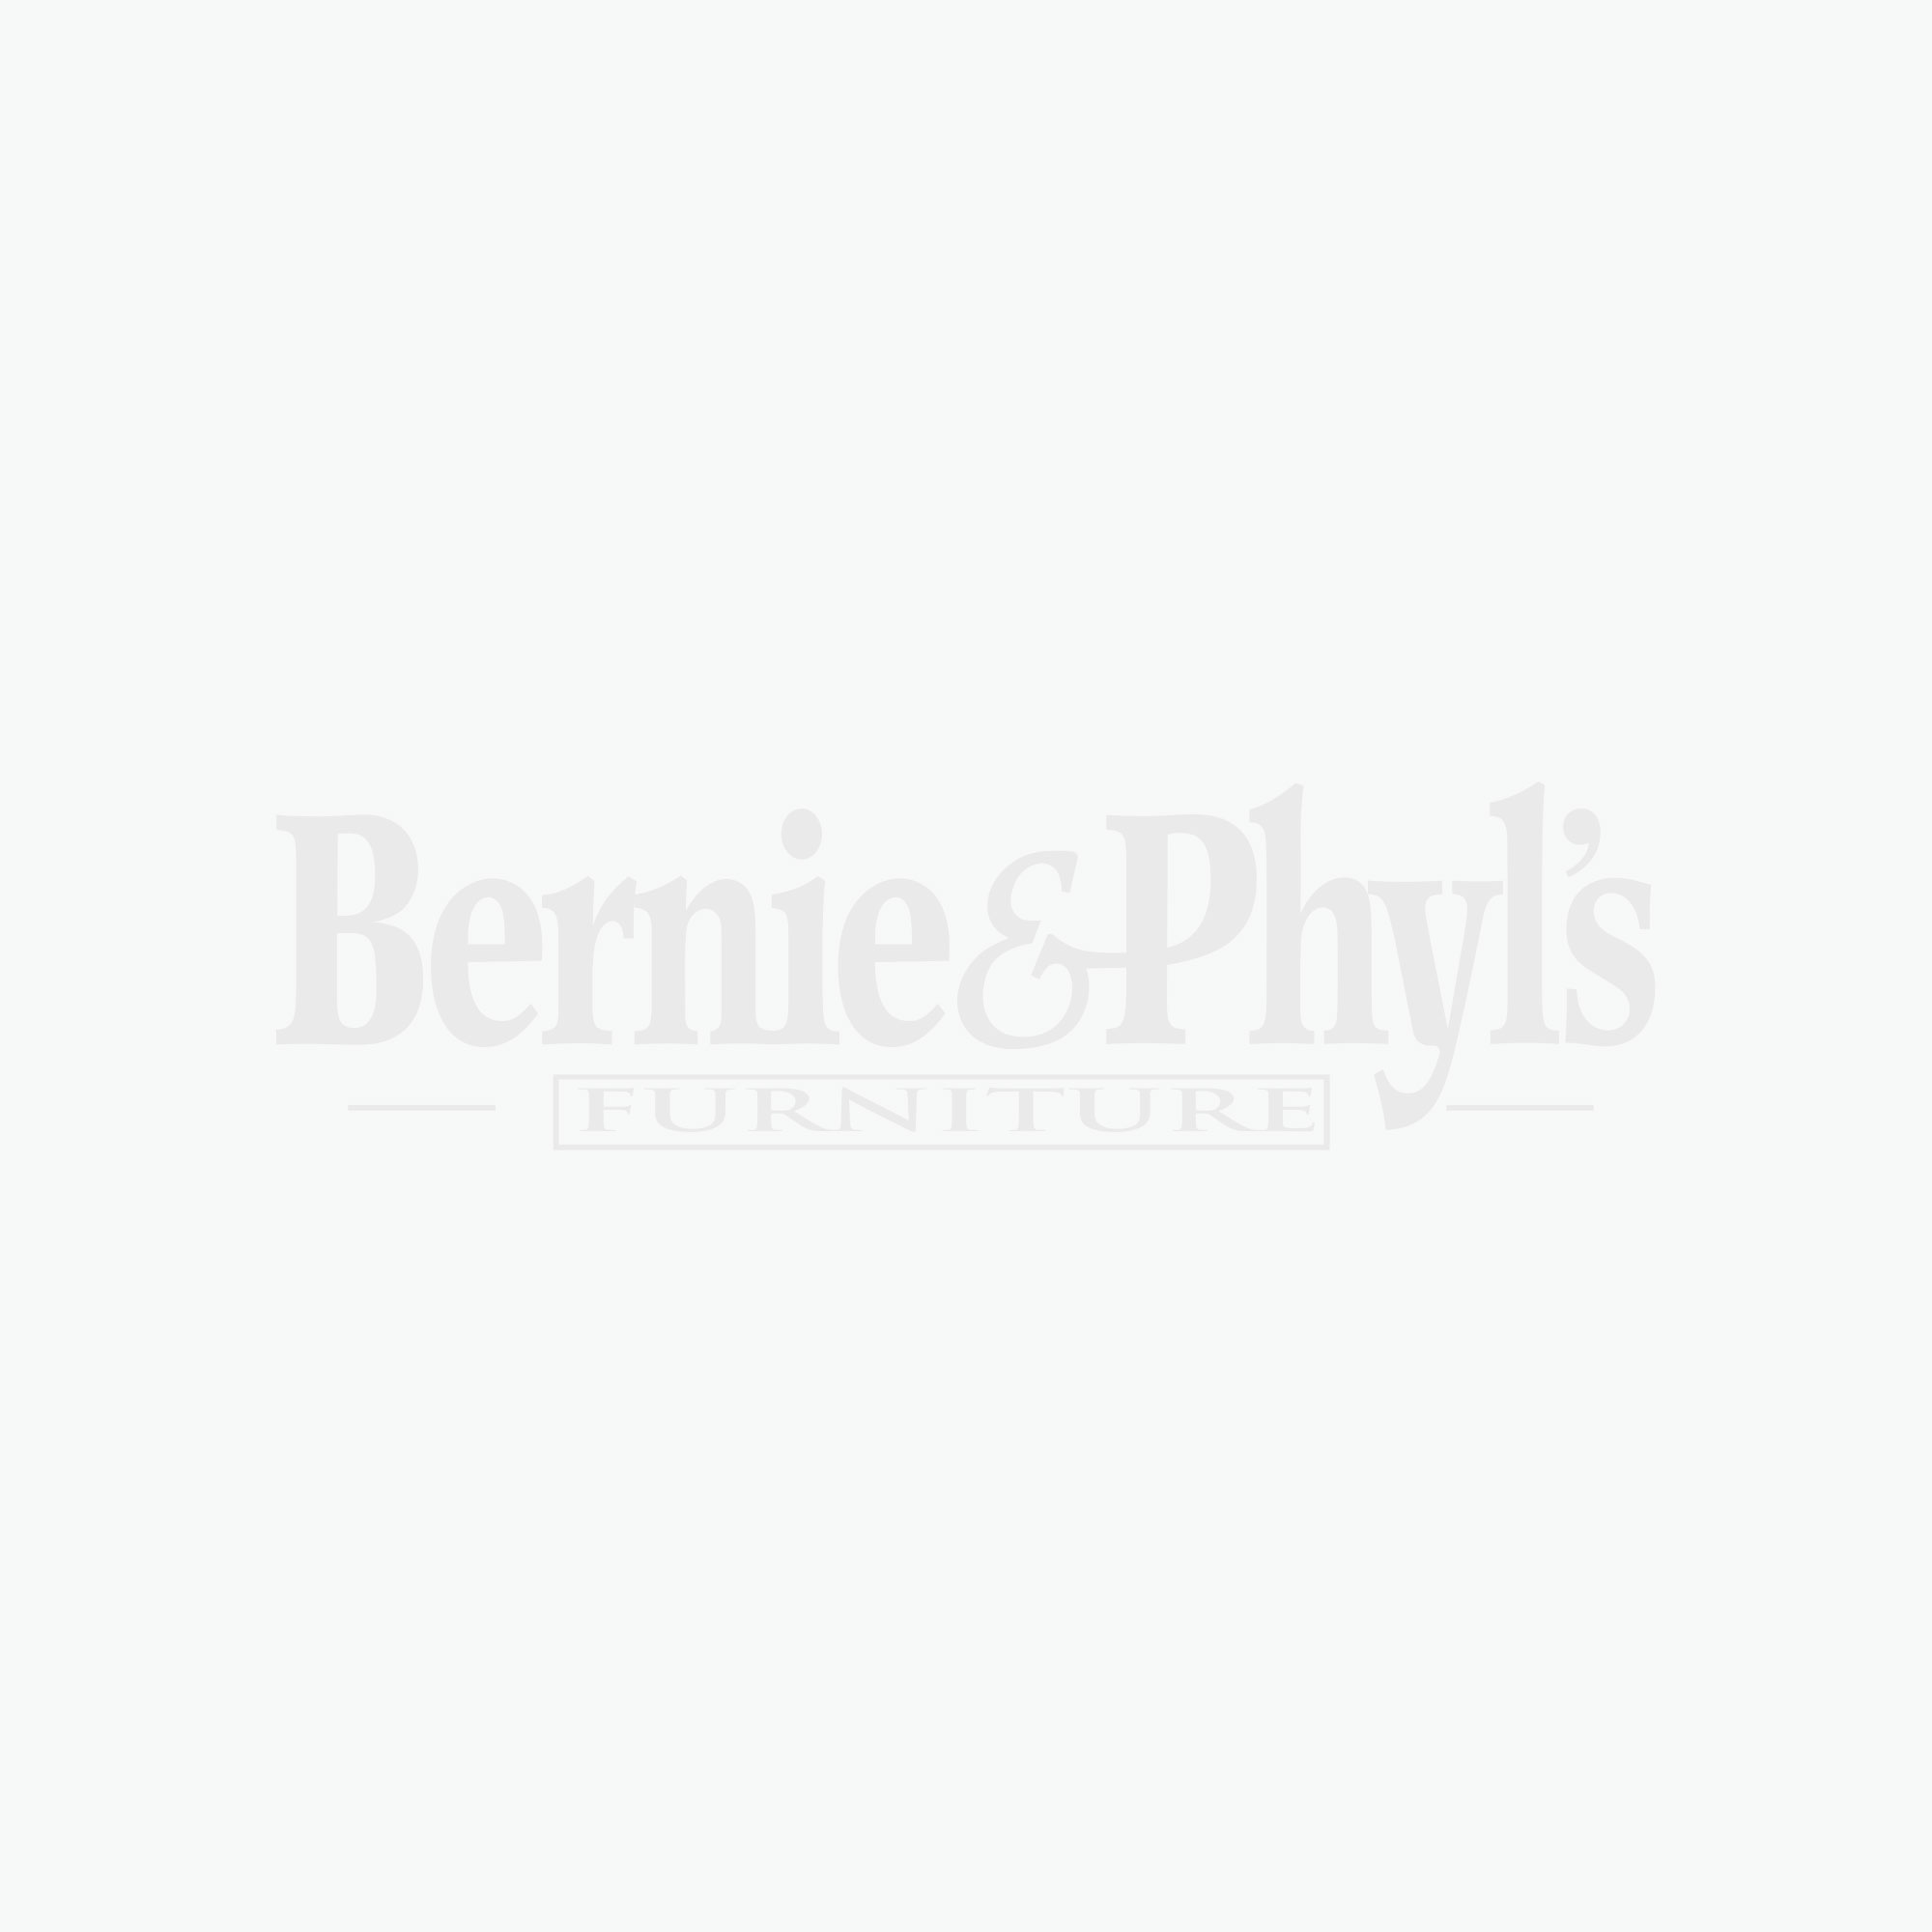 Burbank coffee table bernie phyl s furniture by for Furniture stores in burbank